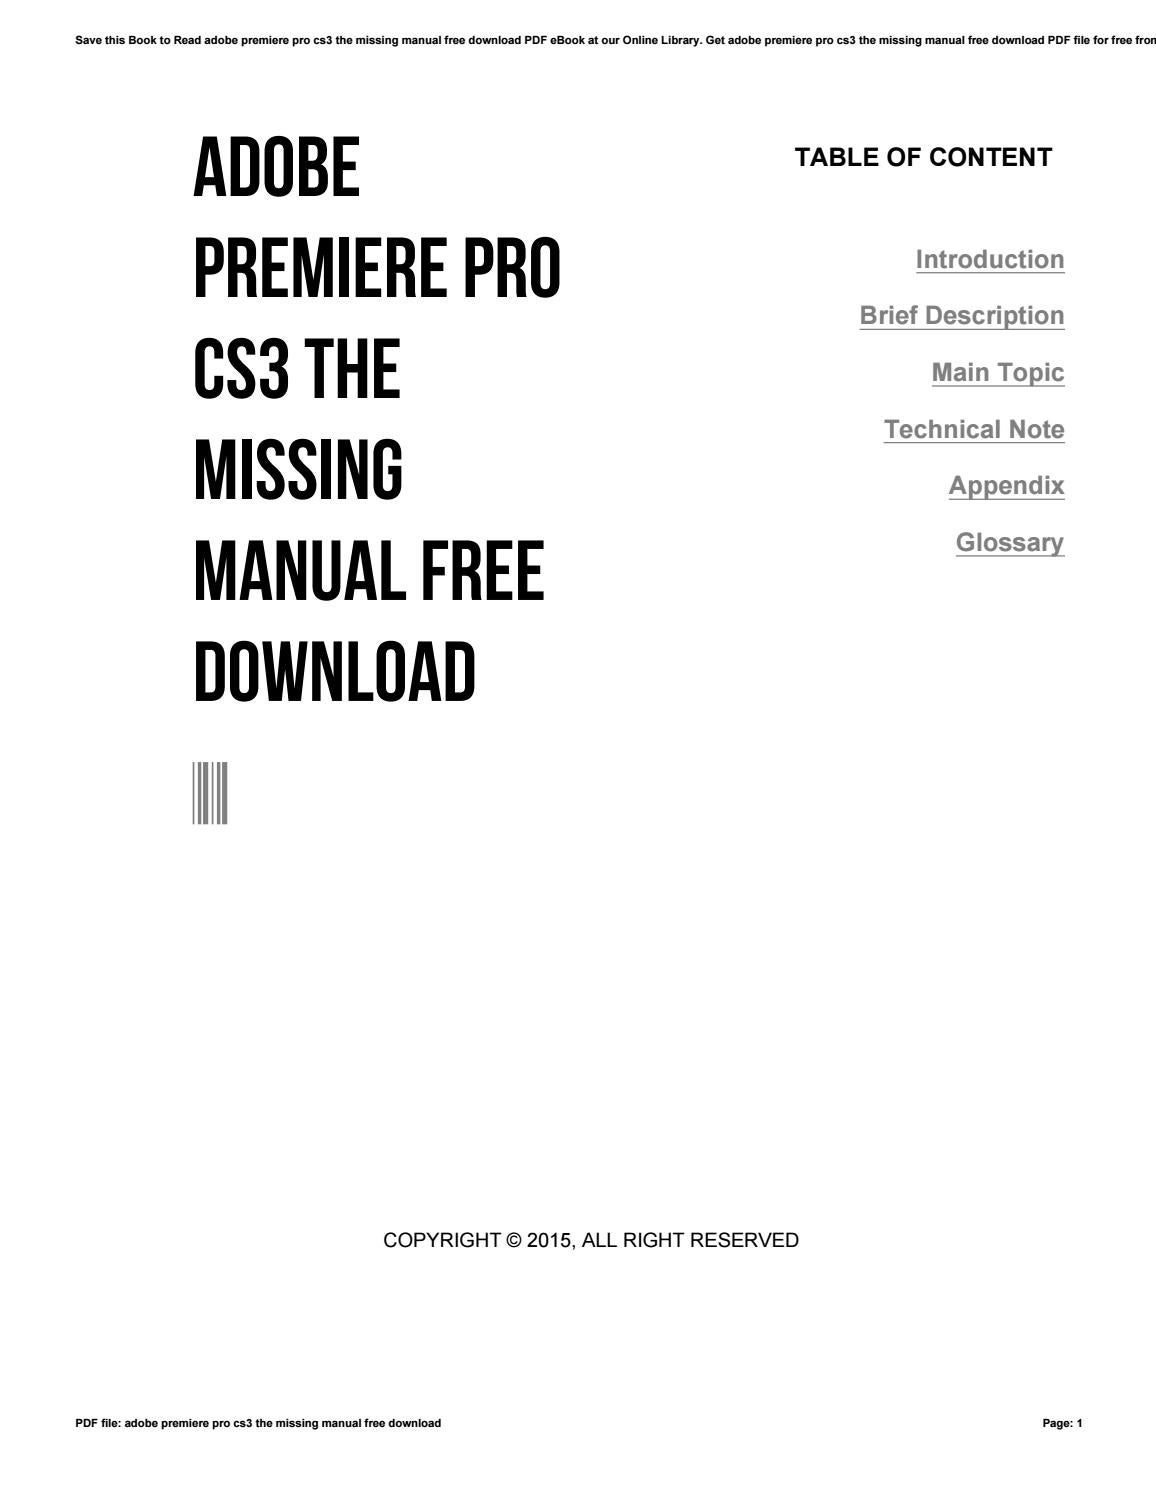 Adobe premiere pro cs3 the missing manual free download by